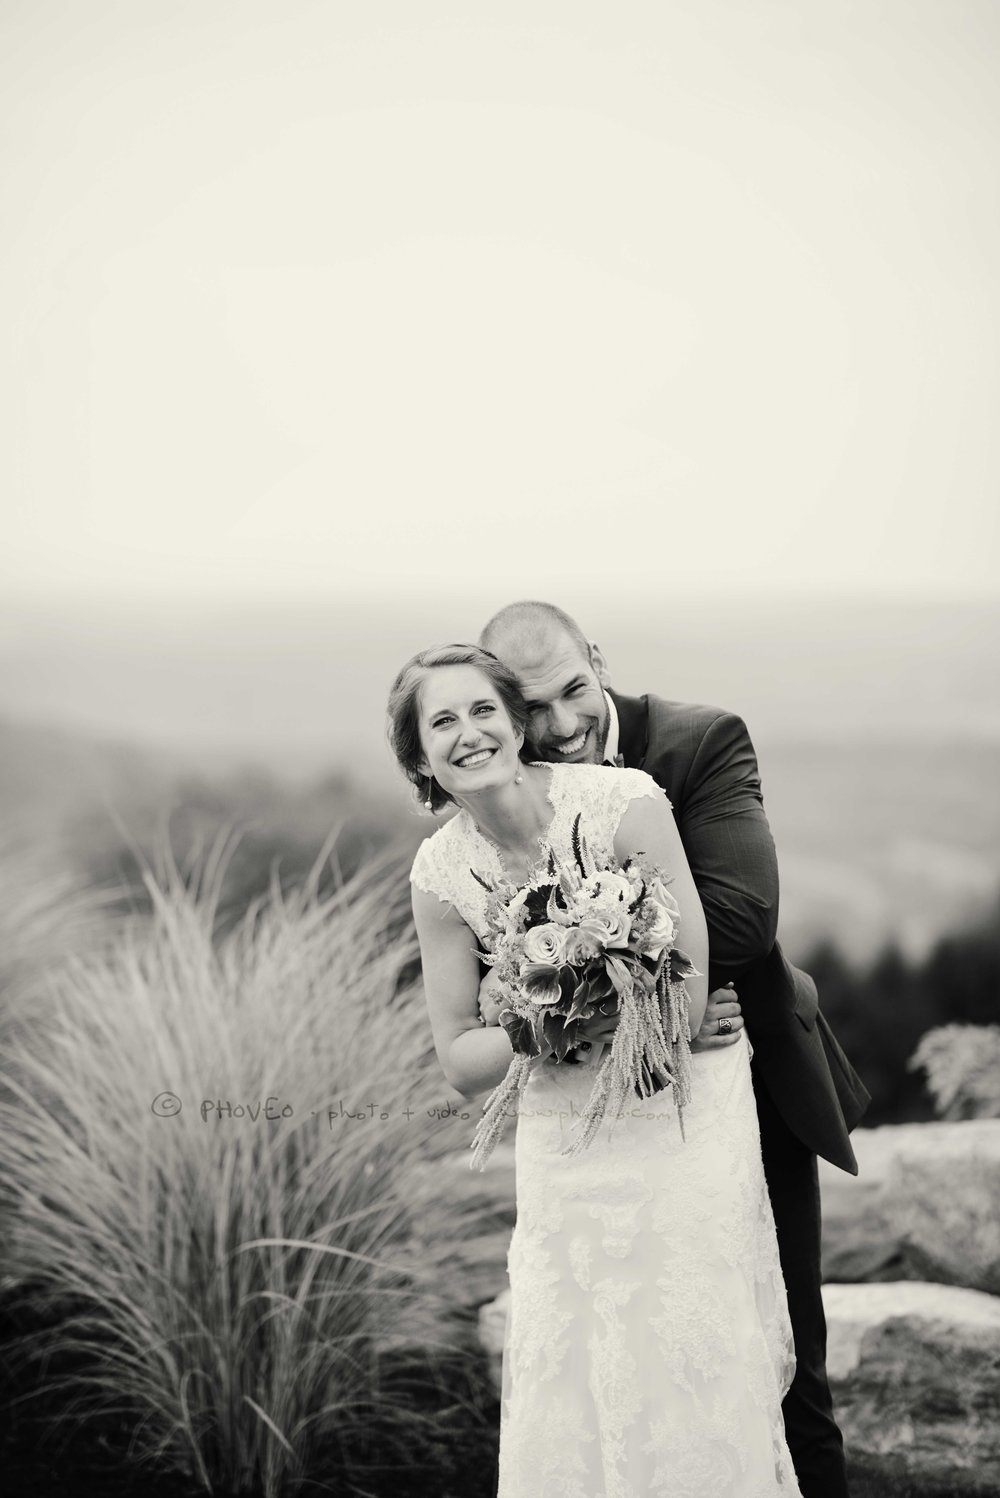 WM_20170812_Lauren+Sean_152bw.jpg